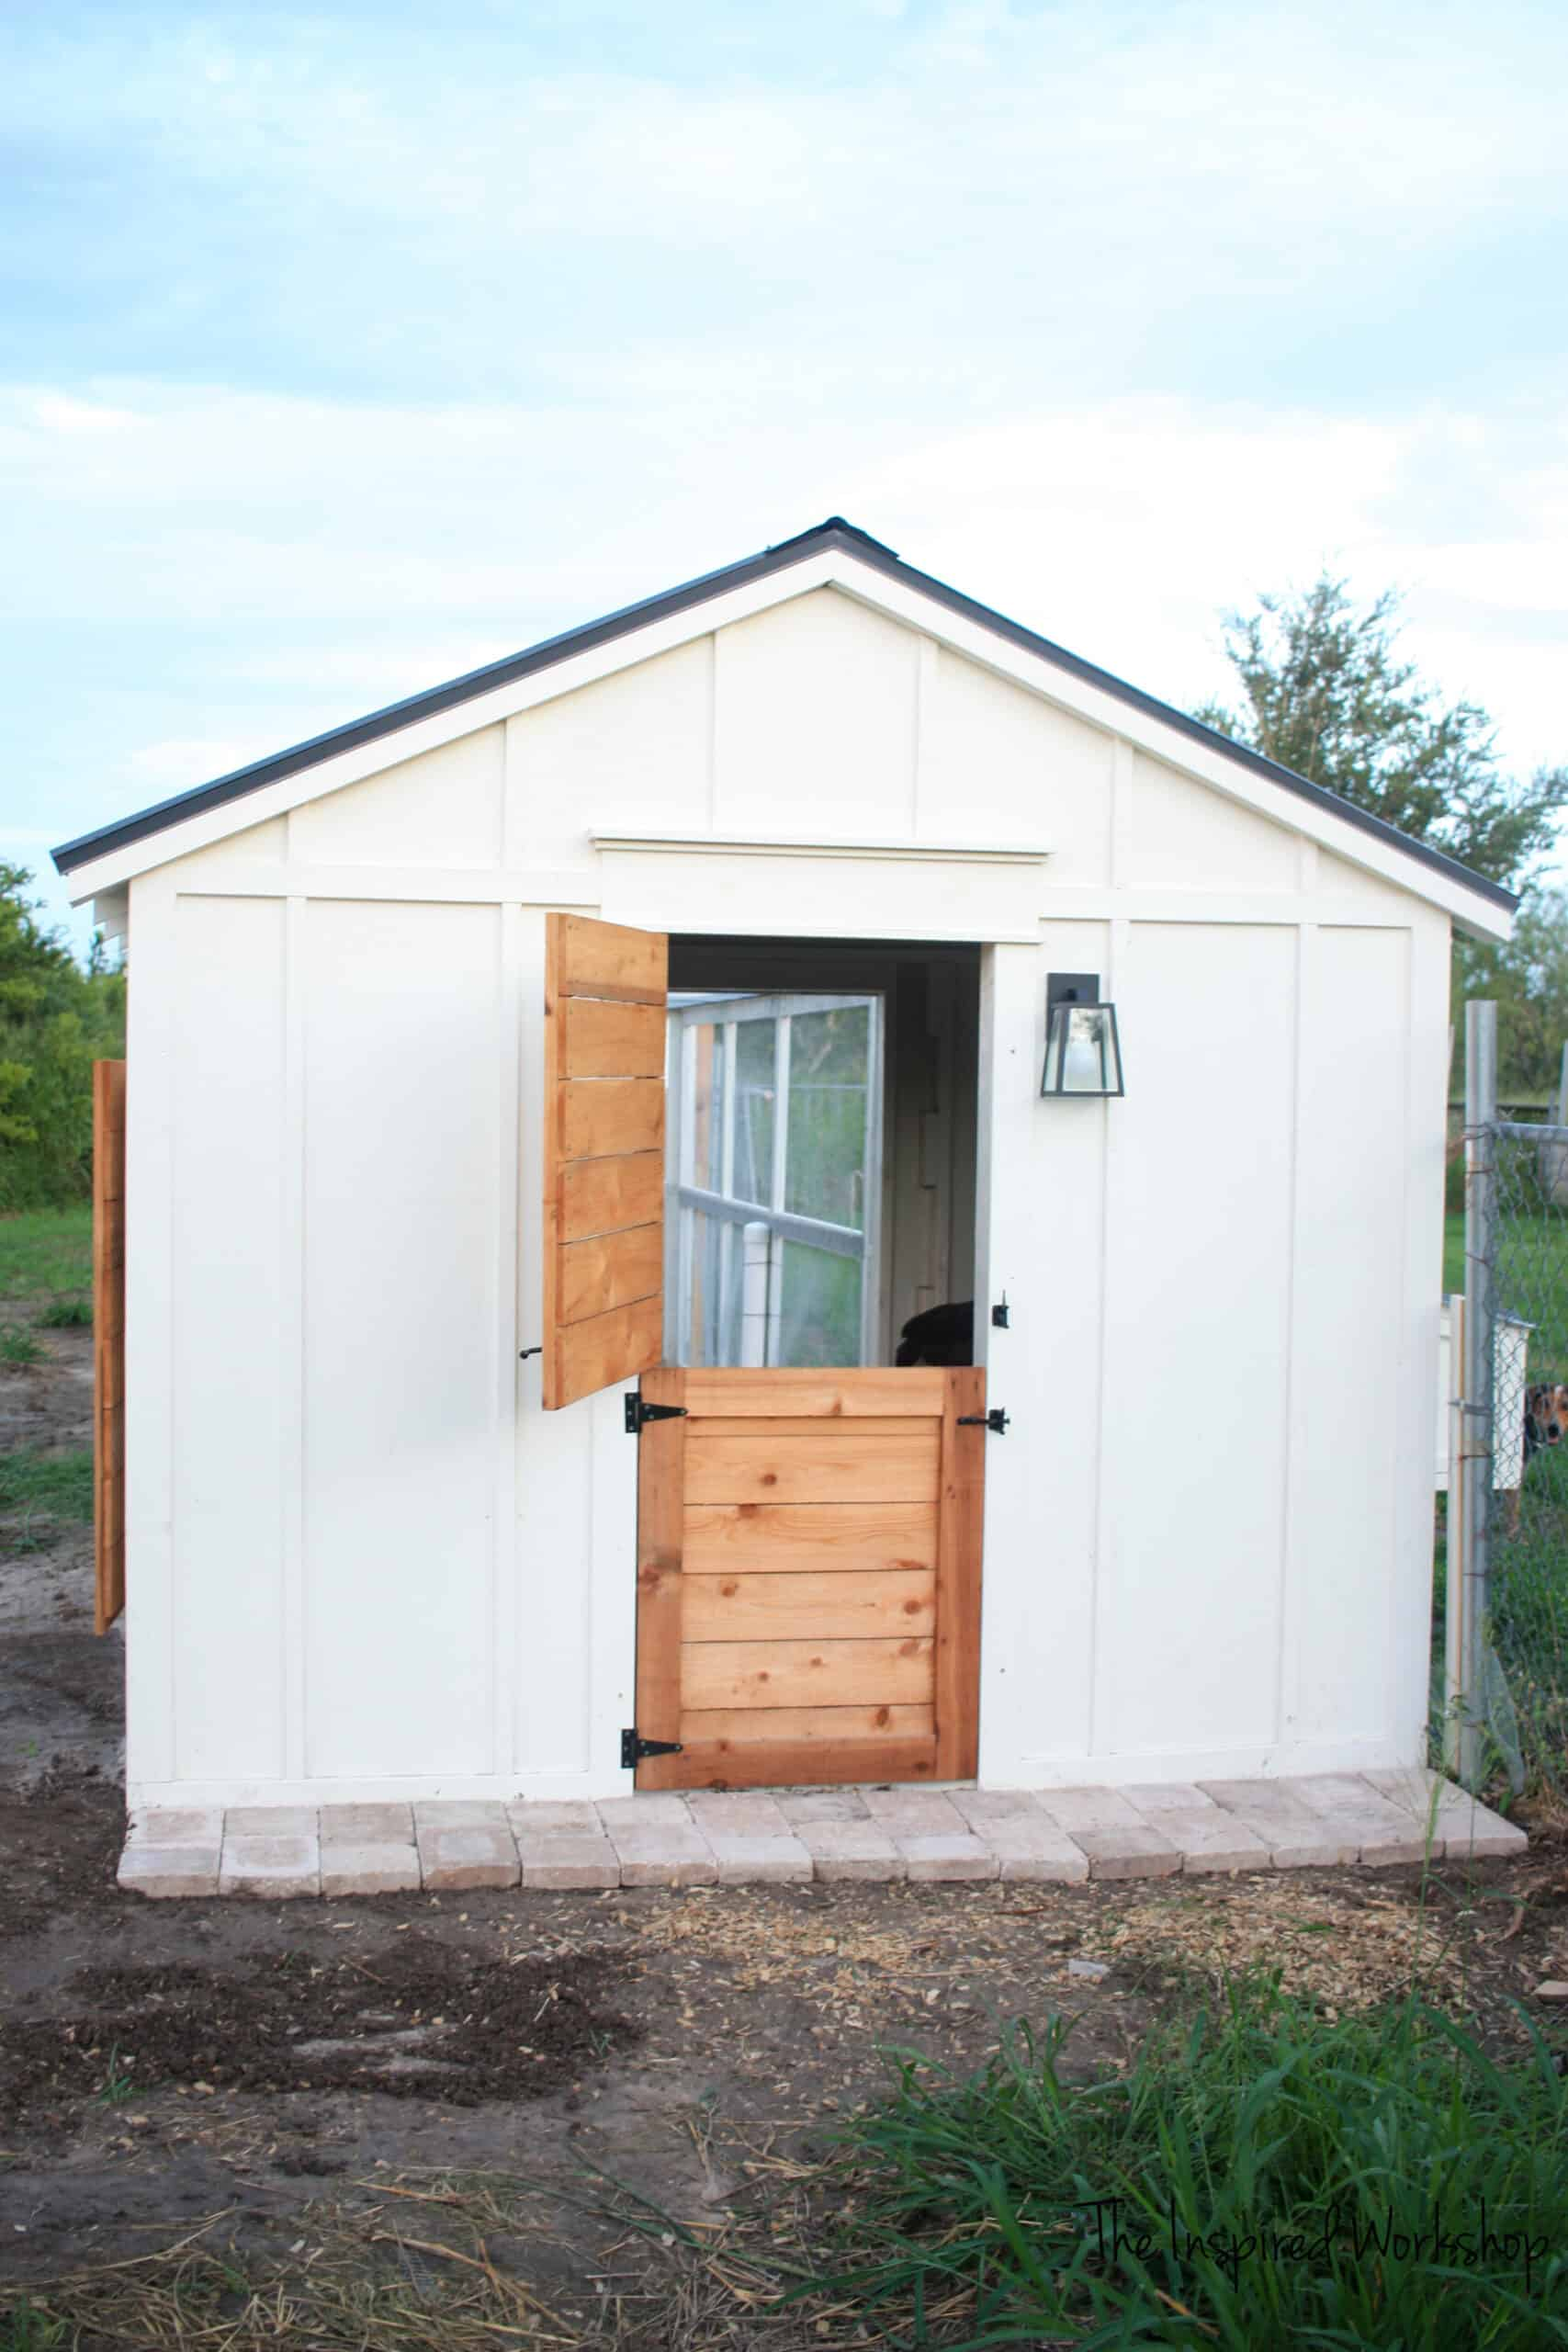 DIY Dutch Door for Chicken Coop